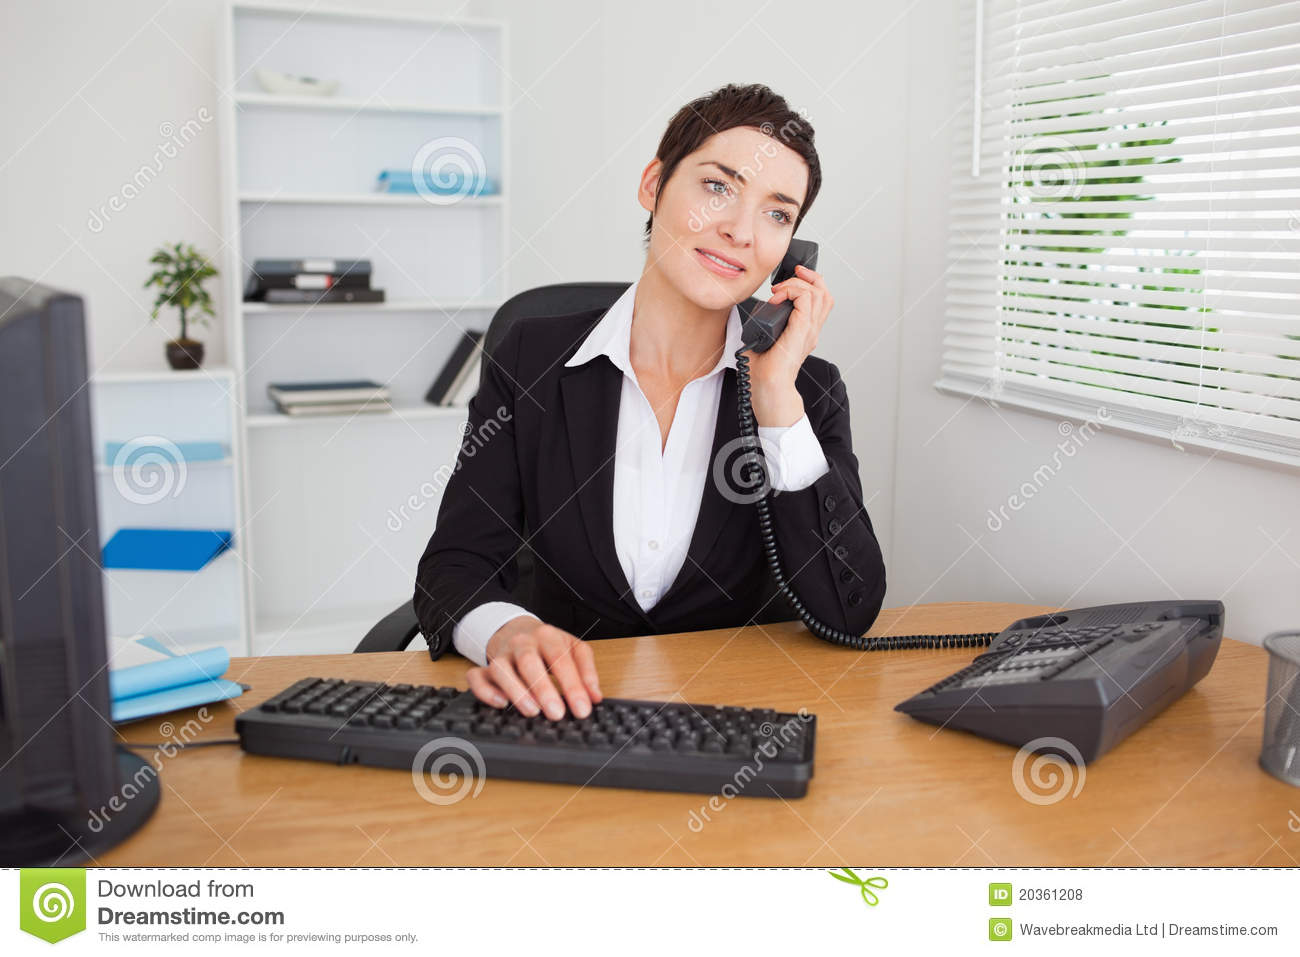 Secretary answering the phone